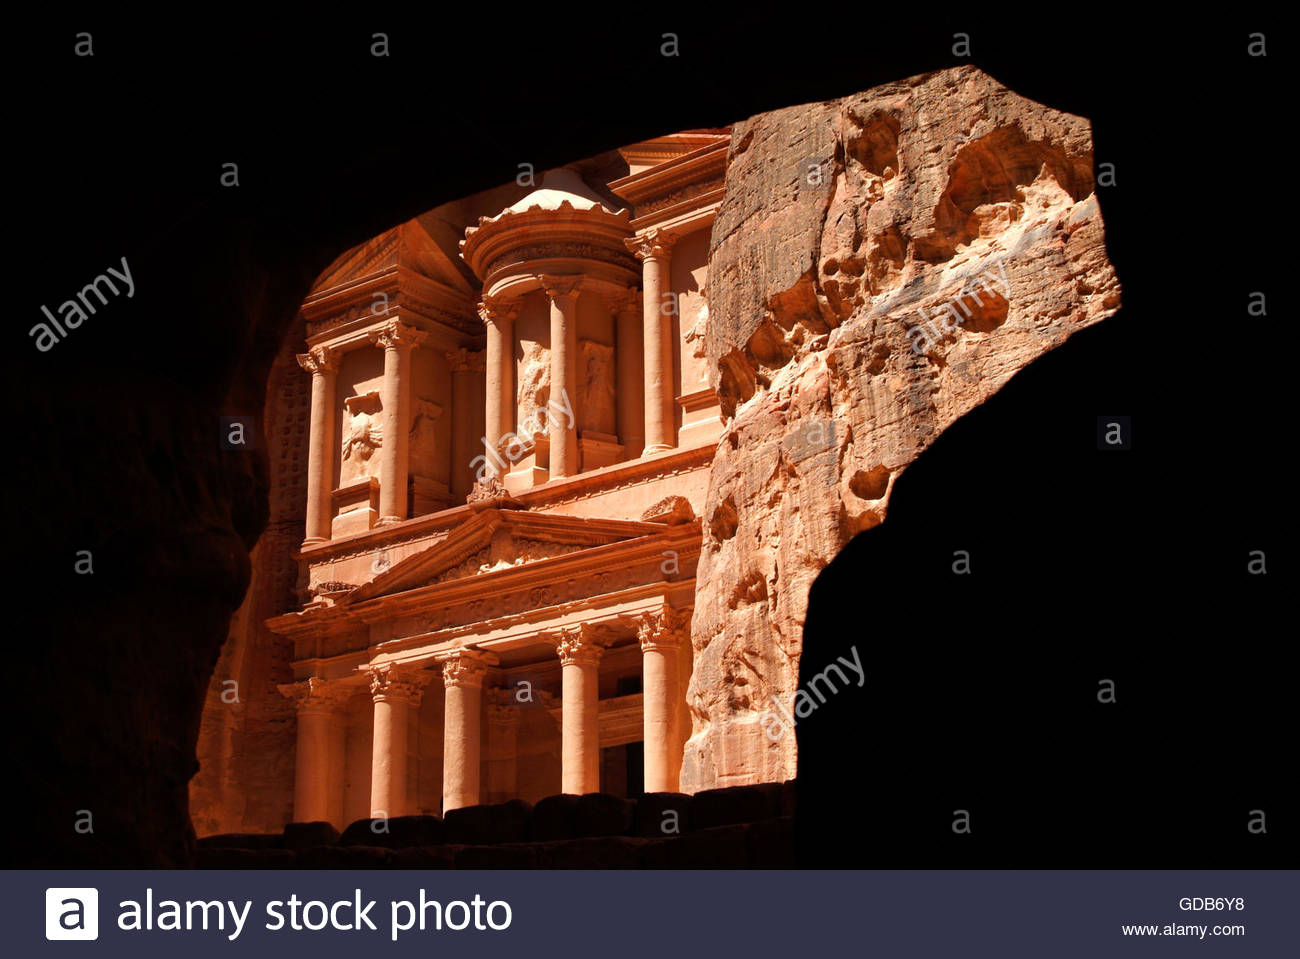 View of the Treasury (Al Khazneh) from inside cave at Petra in Jordan. - Stock Image